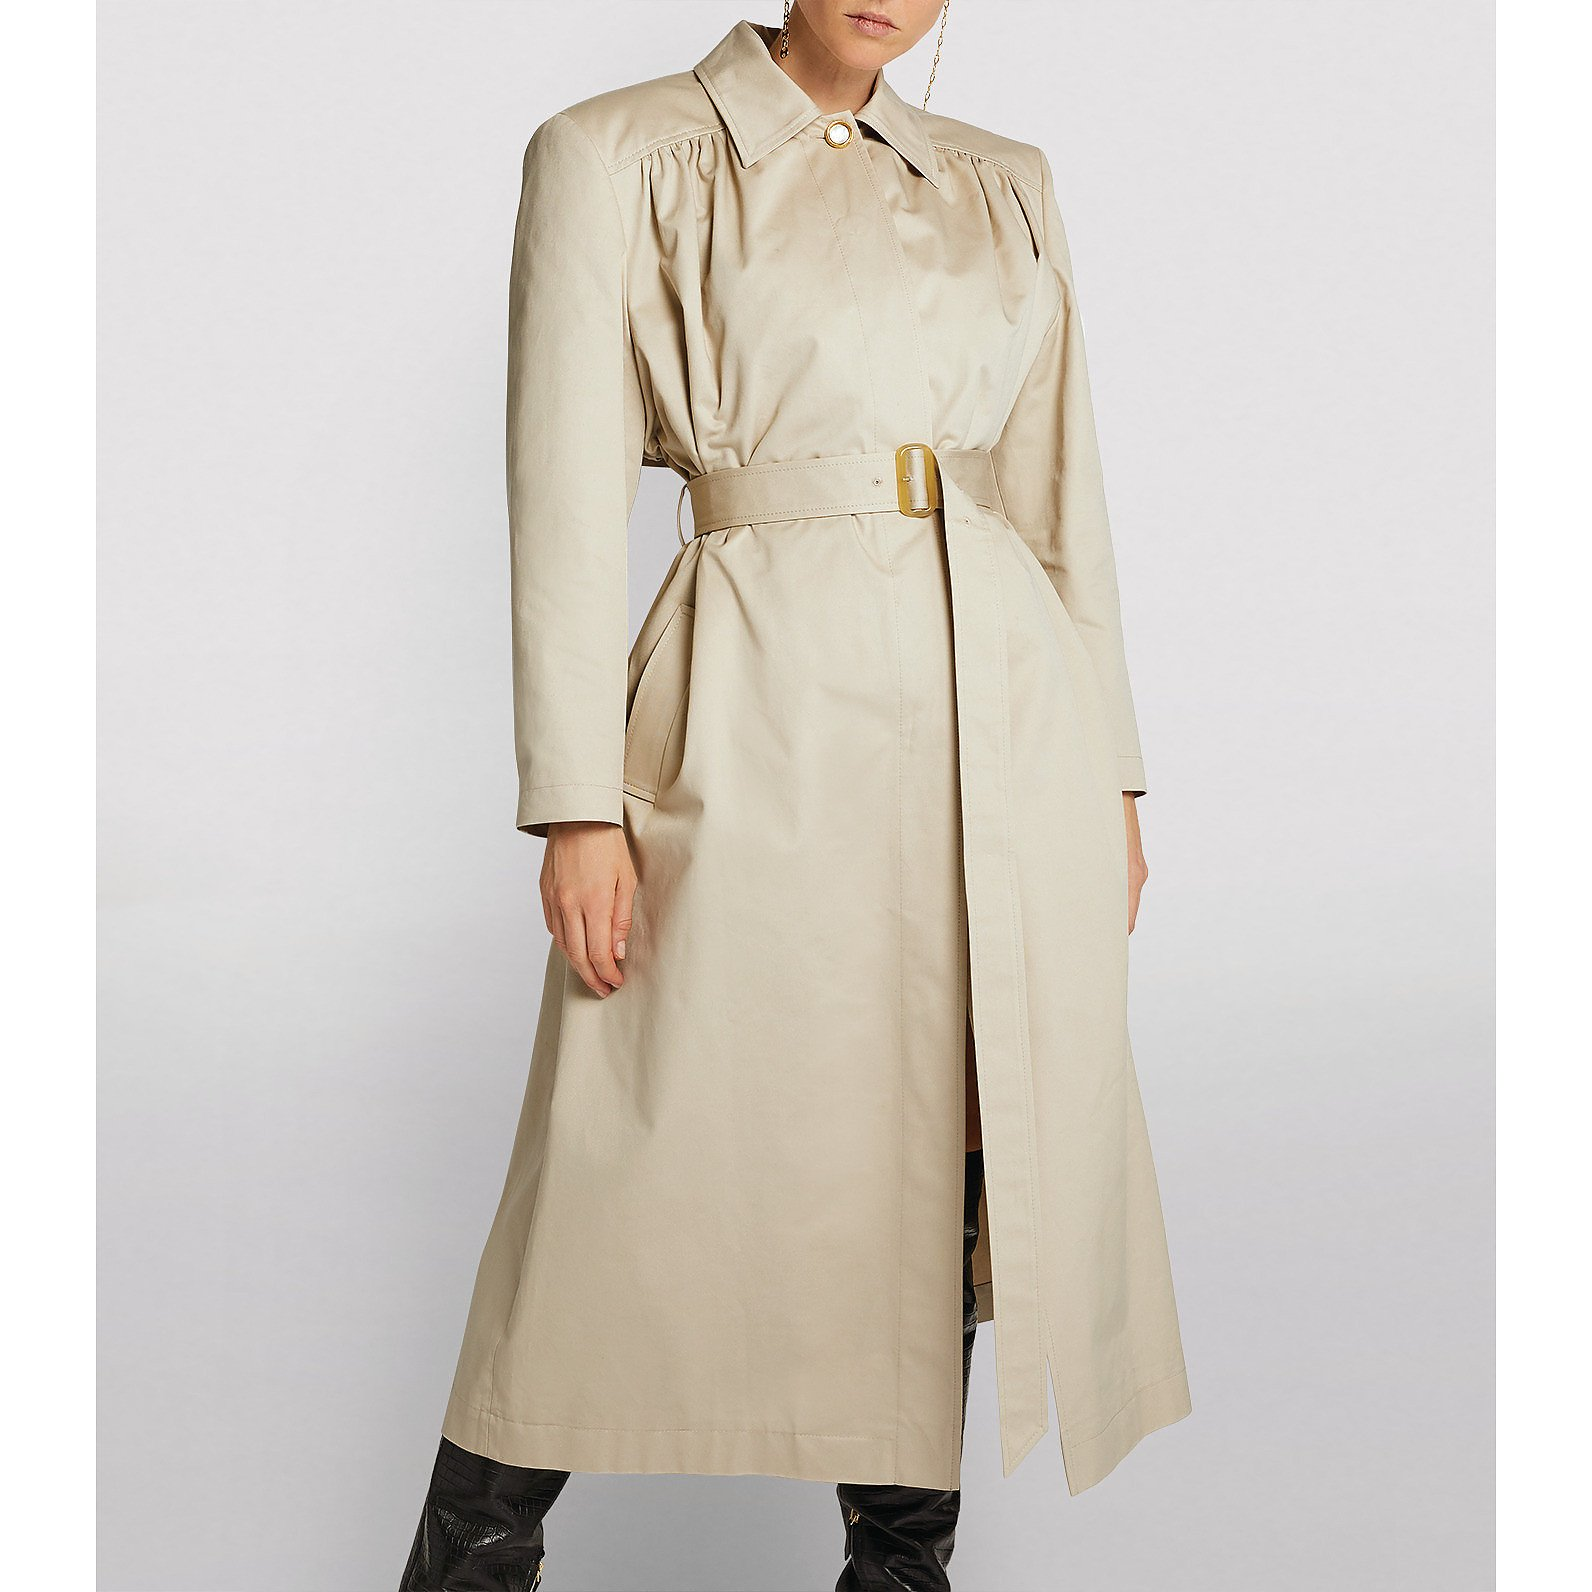 Magda Butrym Belted Trench Coat